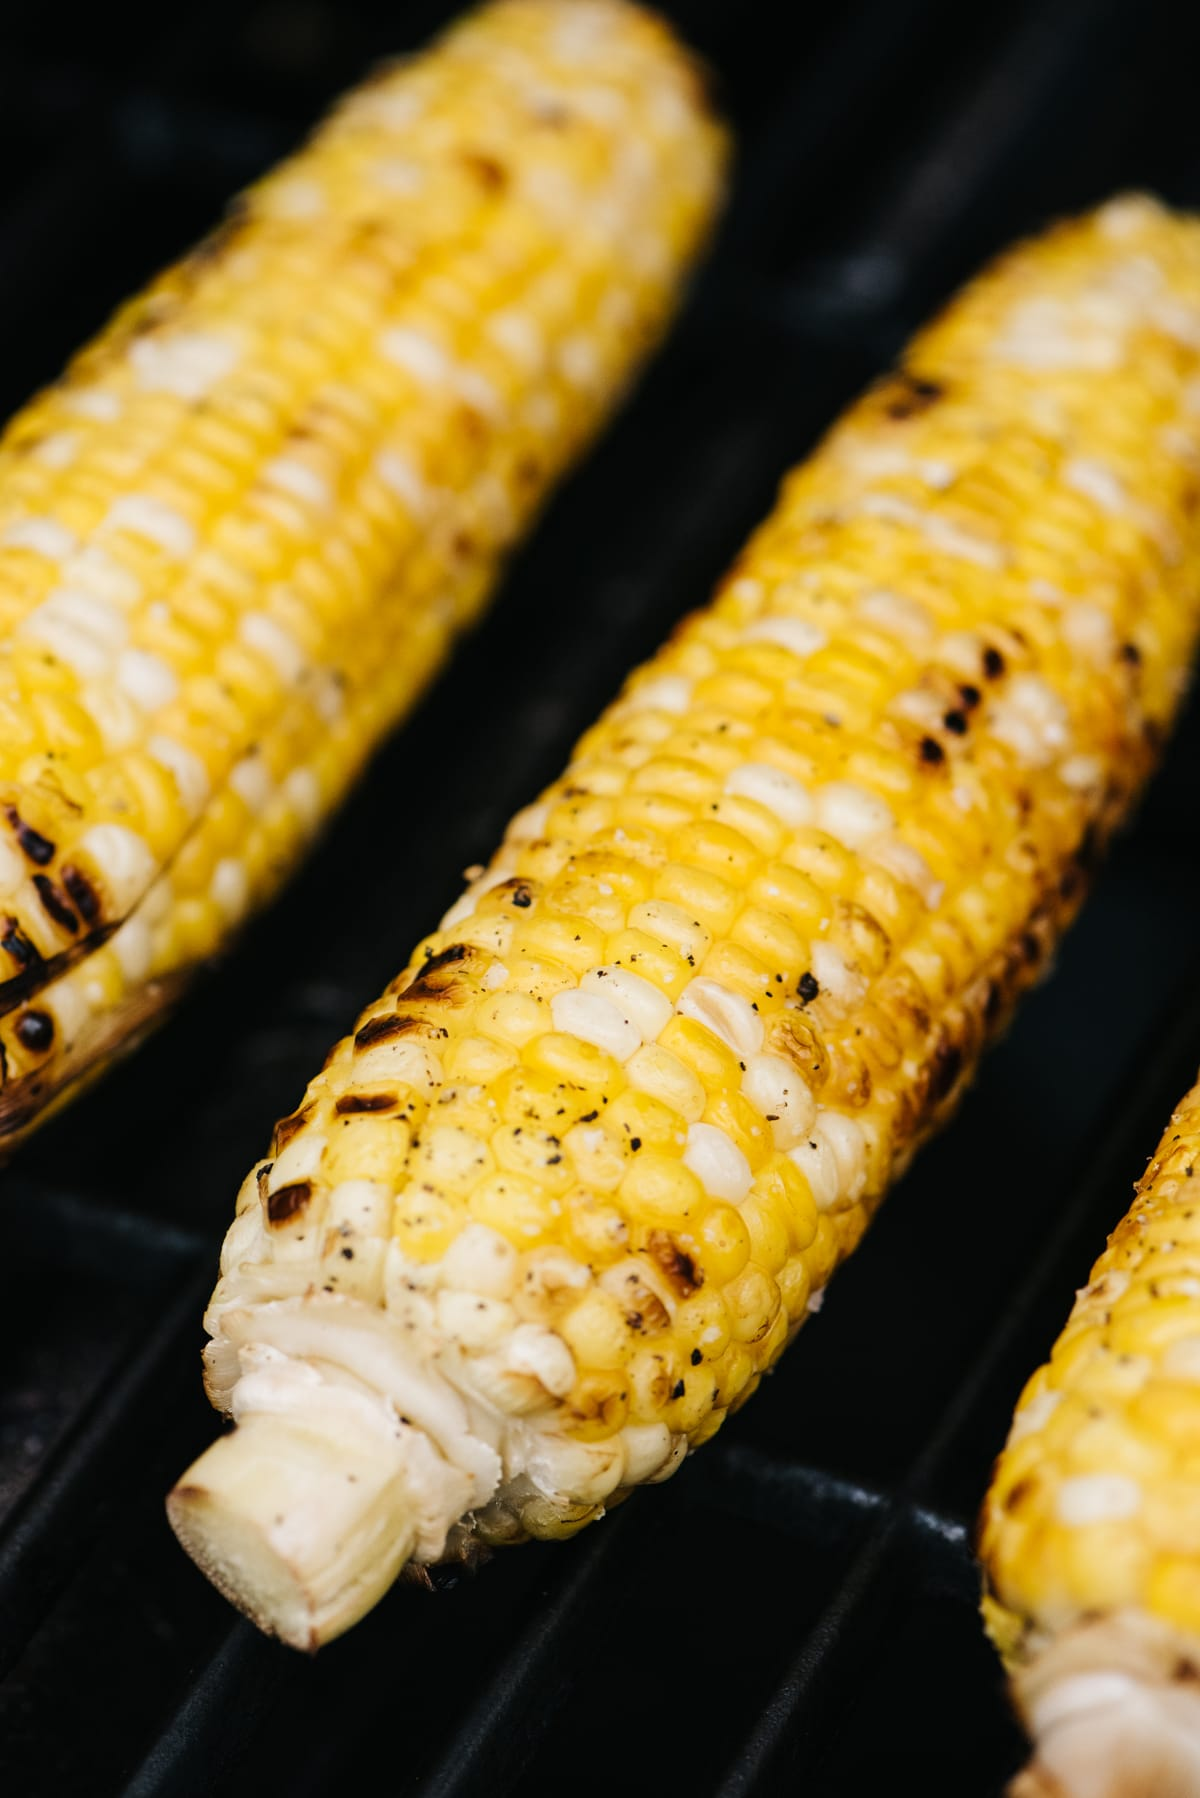 Corn on the cob with husks removed on a gas grill.